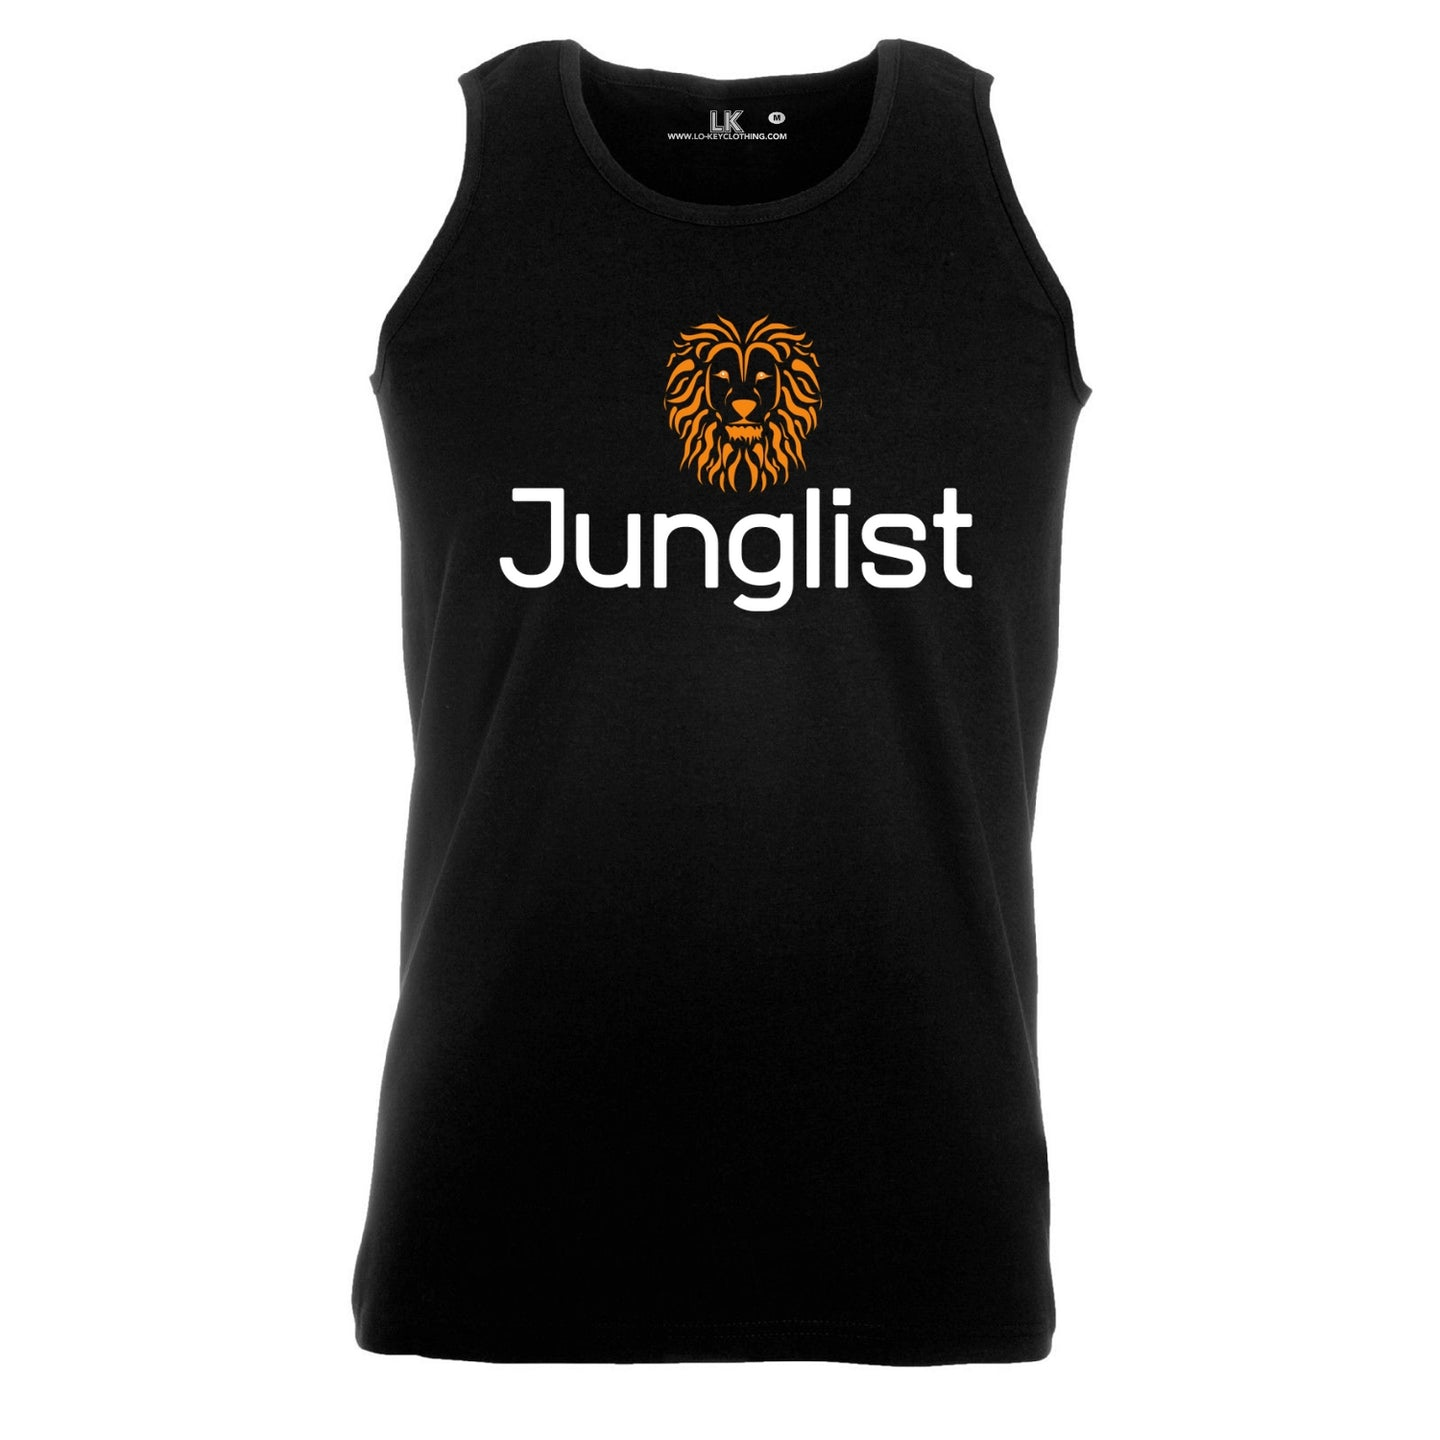 Men's Junglist Tank Top Vest